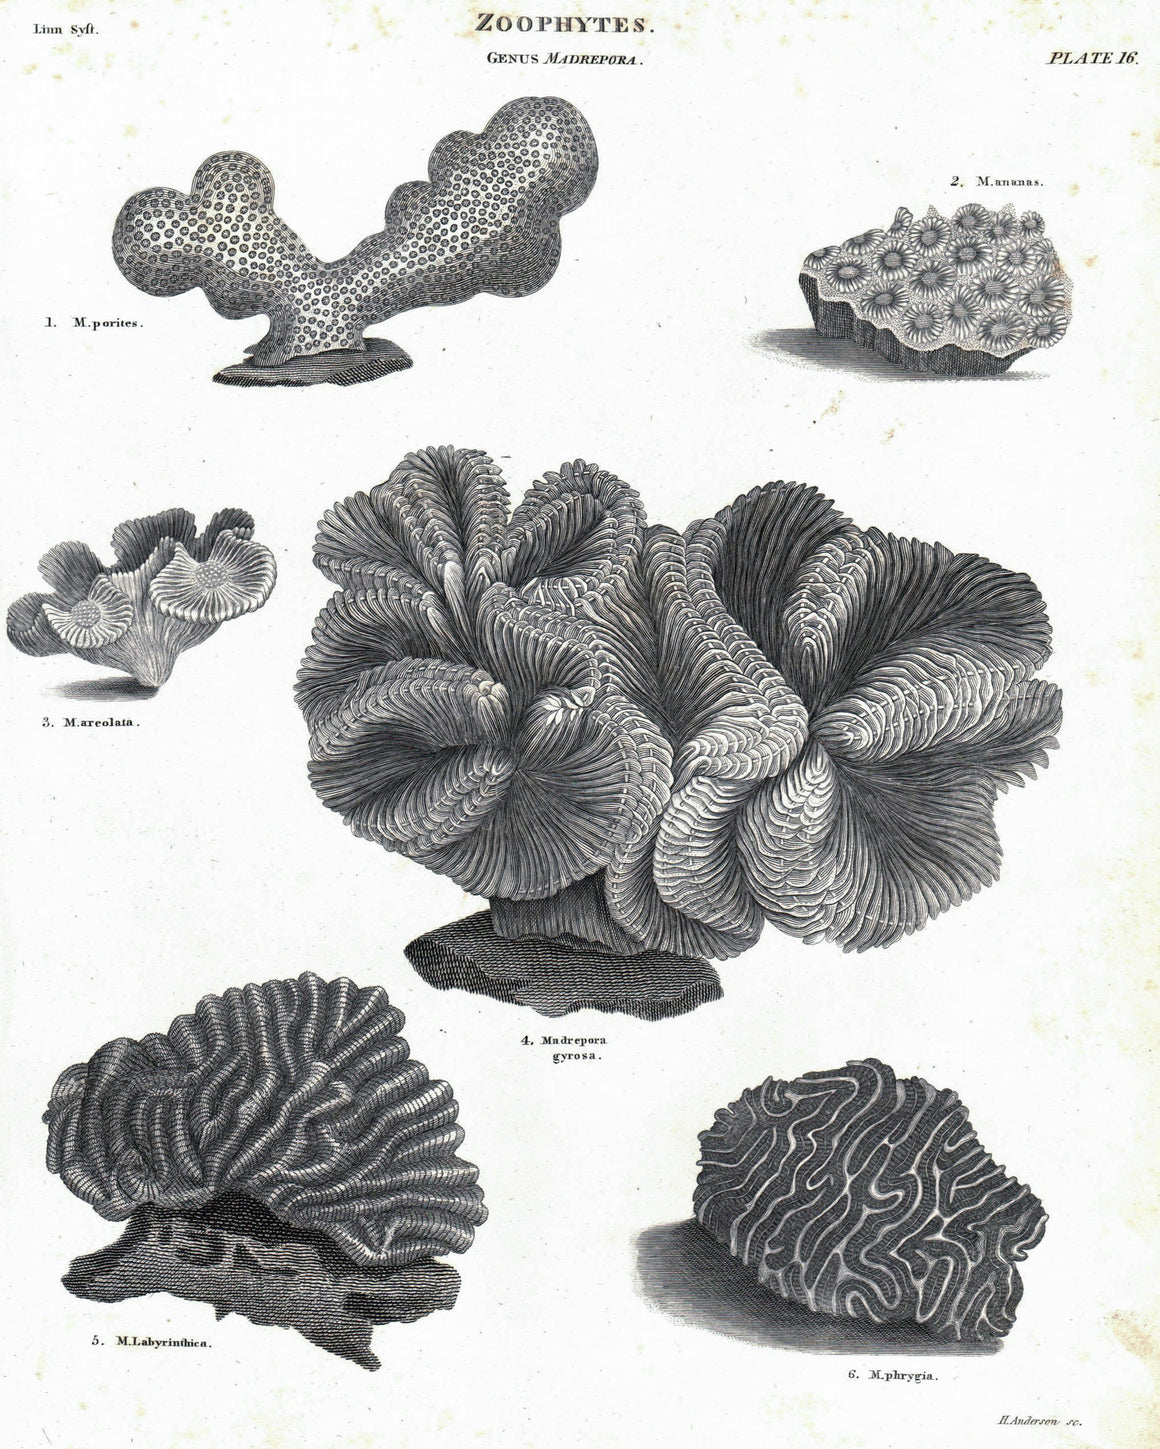 1834 Zoophytes Plate 16